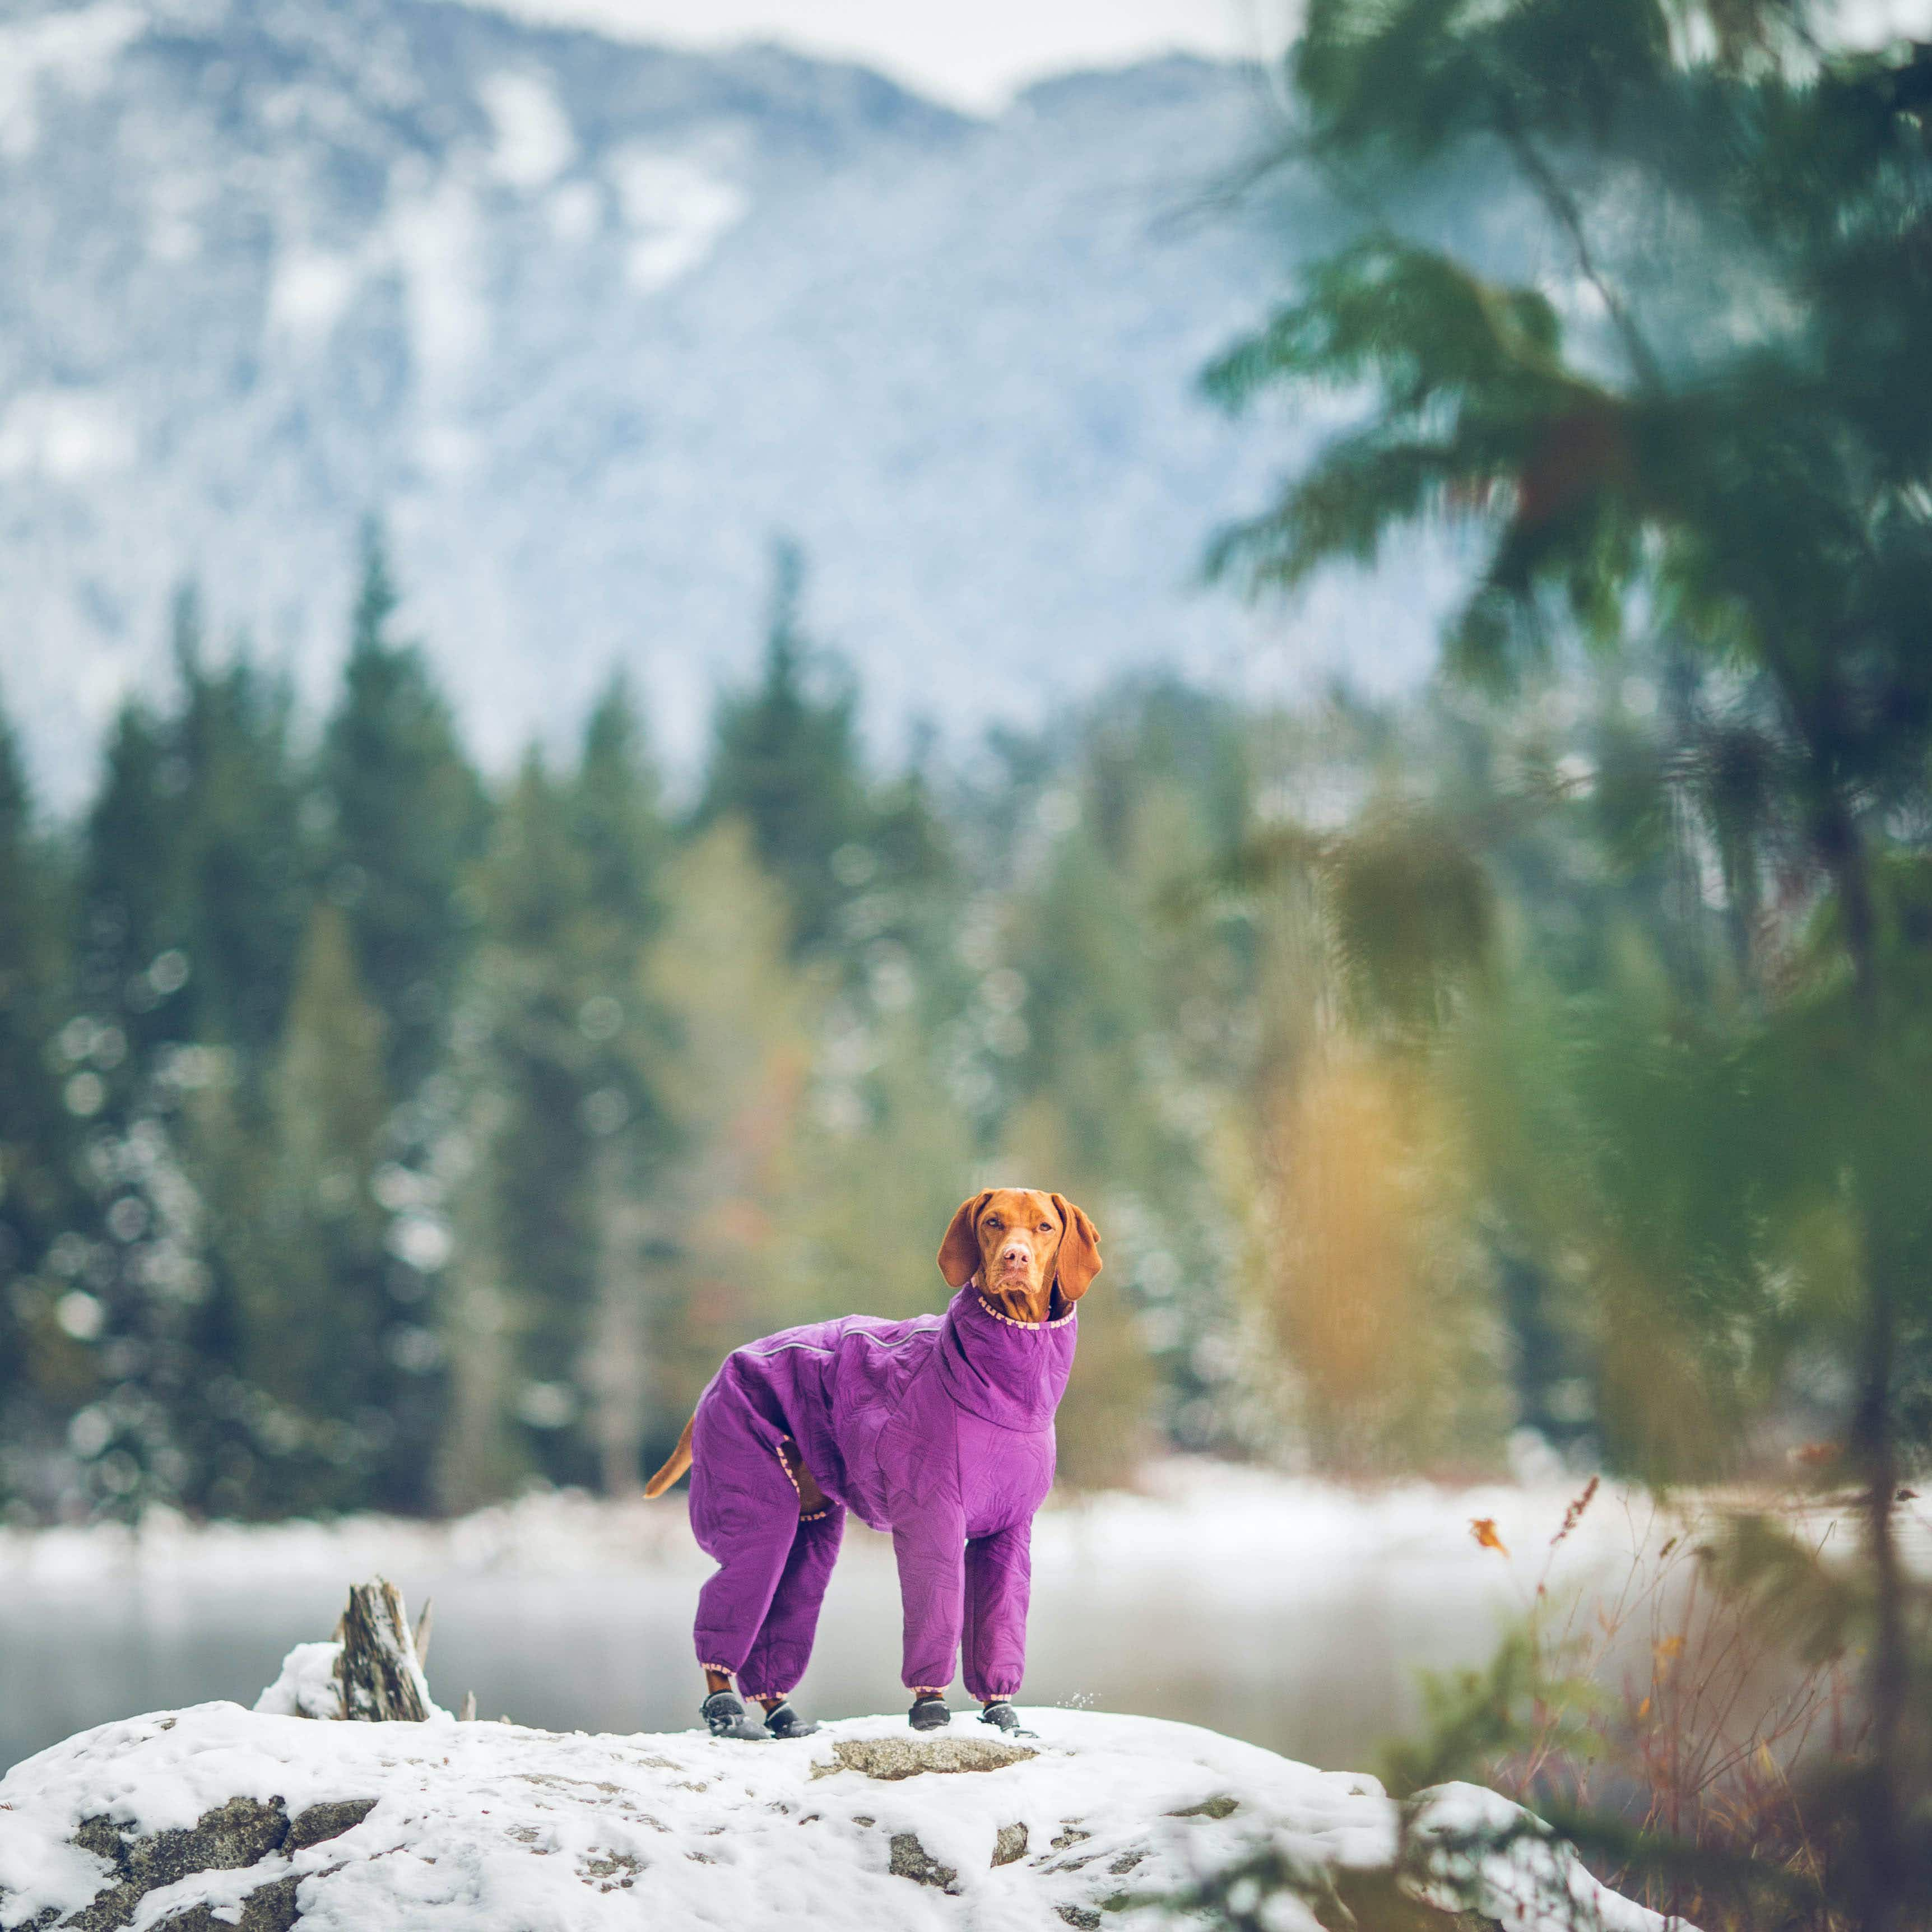 This adorable Hungarian Vizsla is the perfect companion for a weekend hike